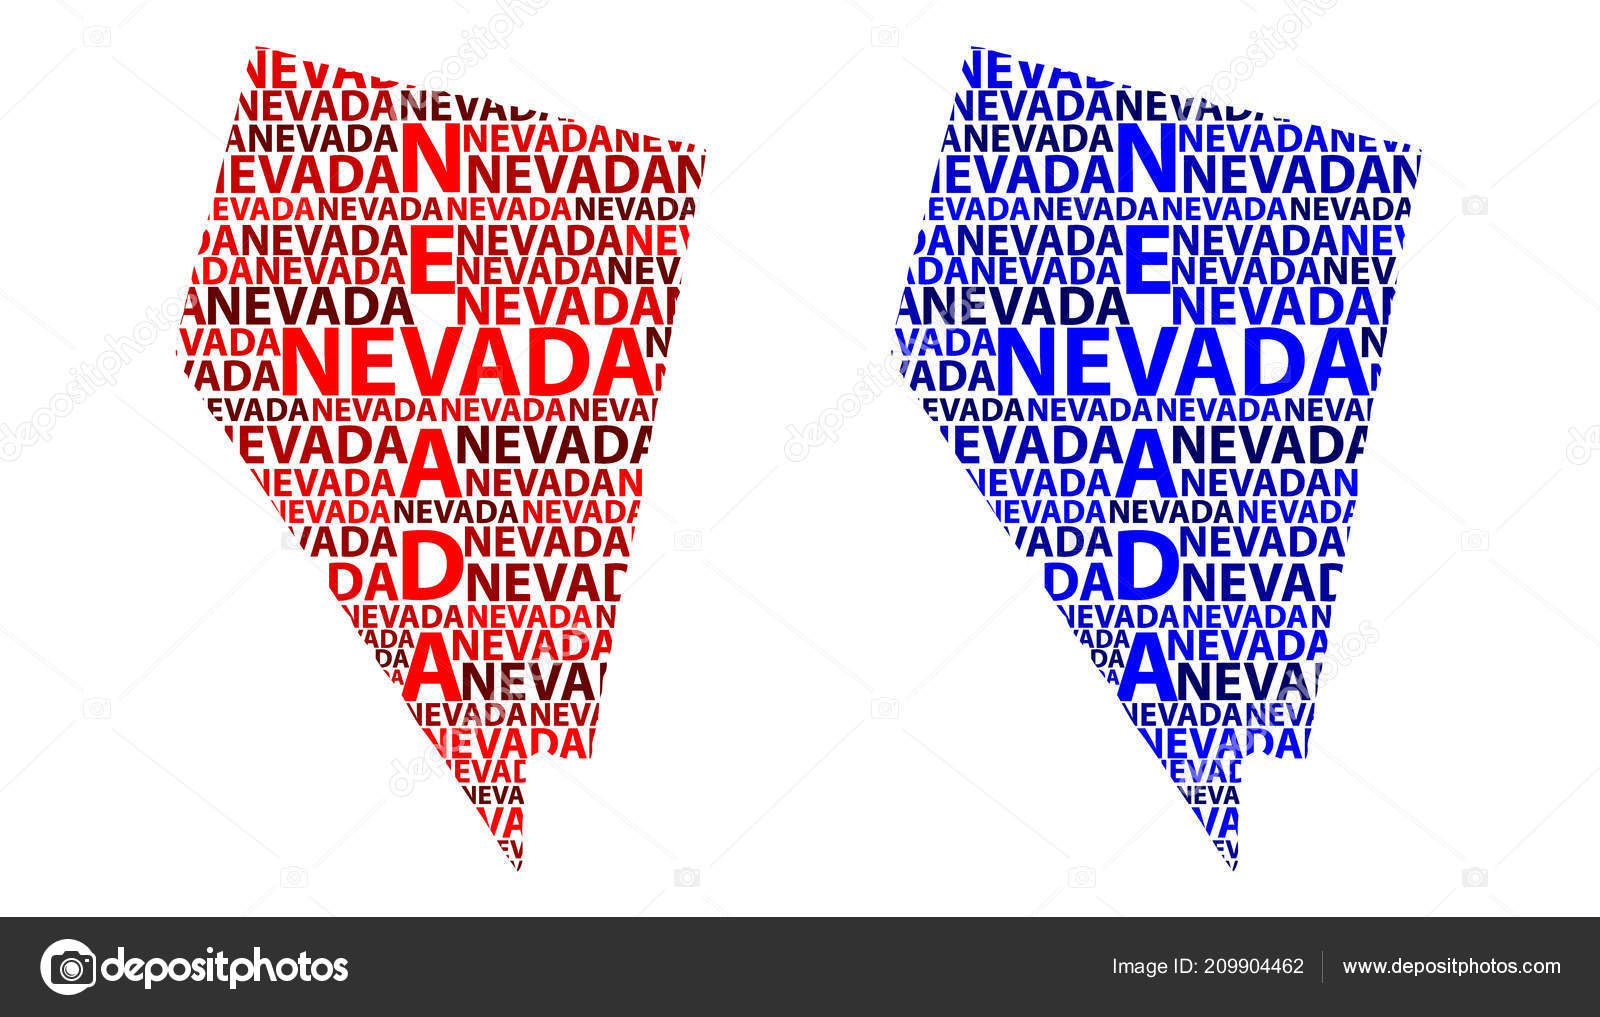 Sketch Nevada United States America Letter Text Map Nevada Map Stock Vector C Danler 209904462